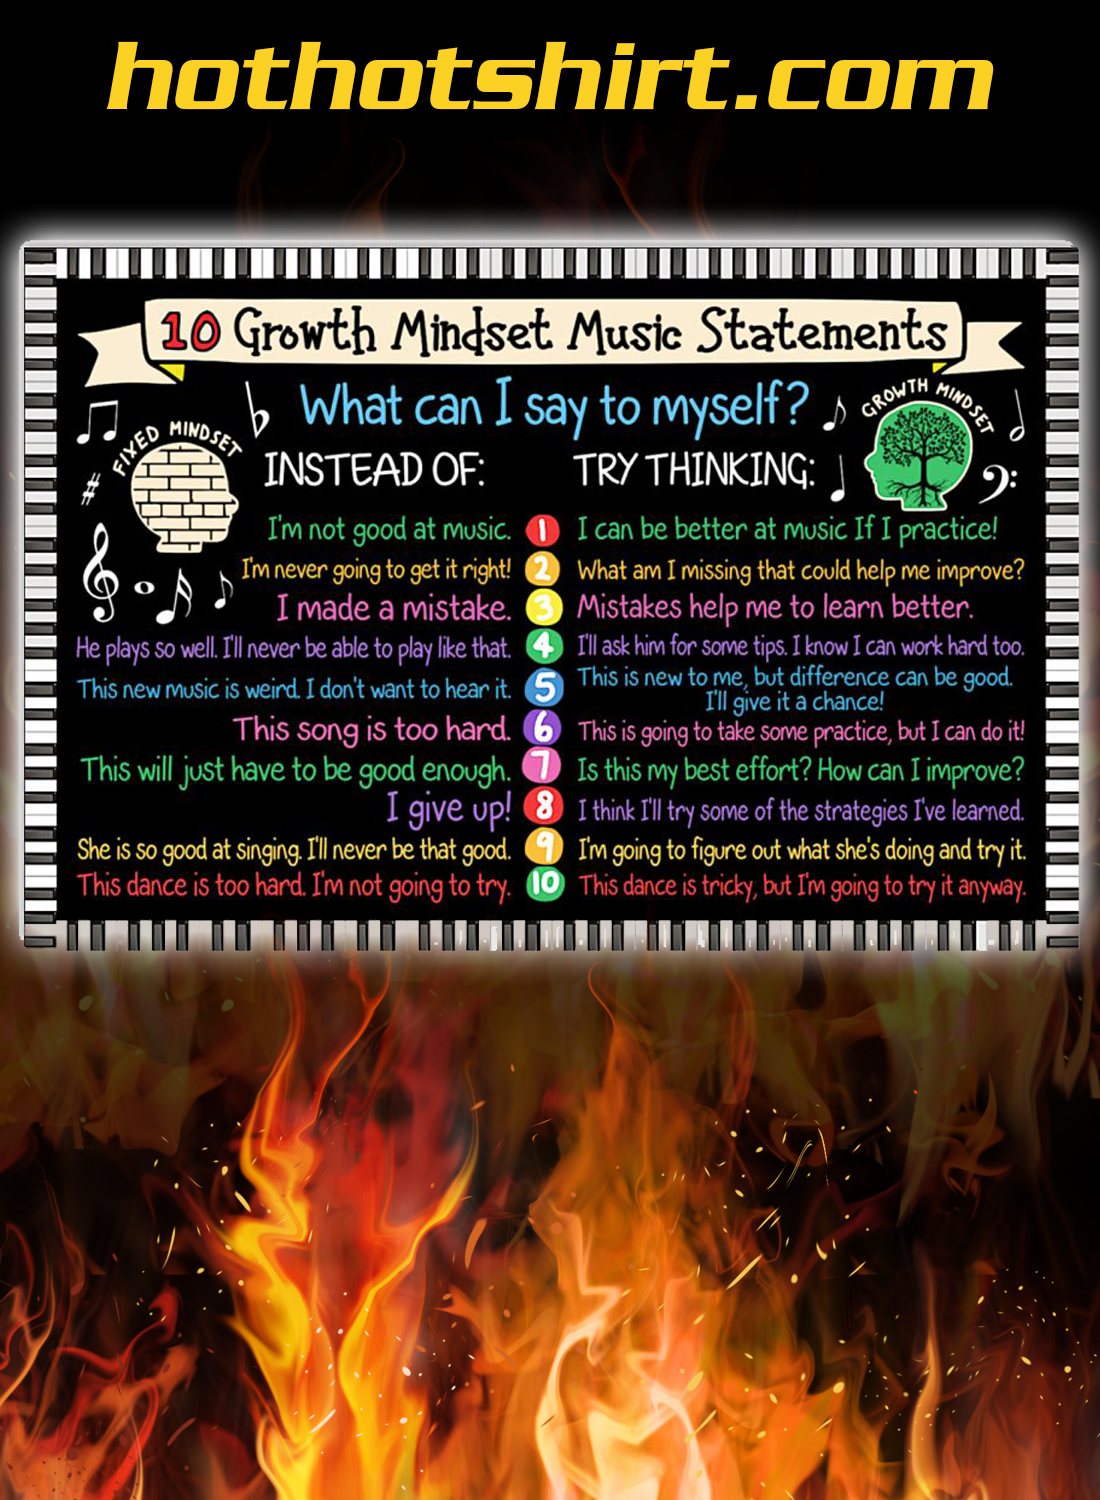 10 growth mindset music statements poster 2